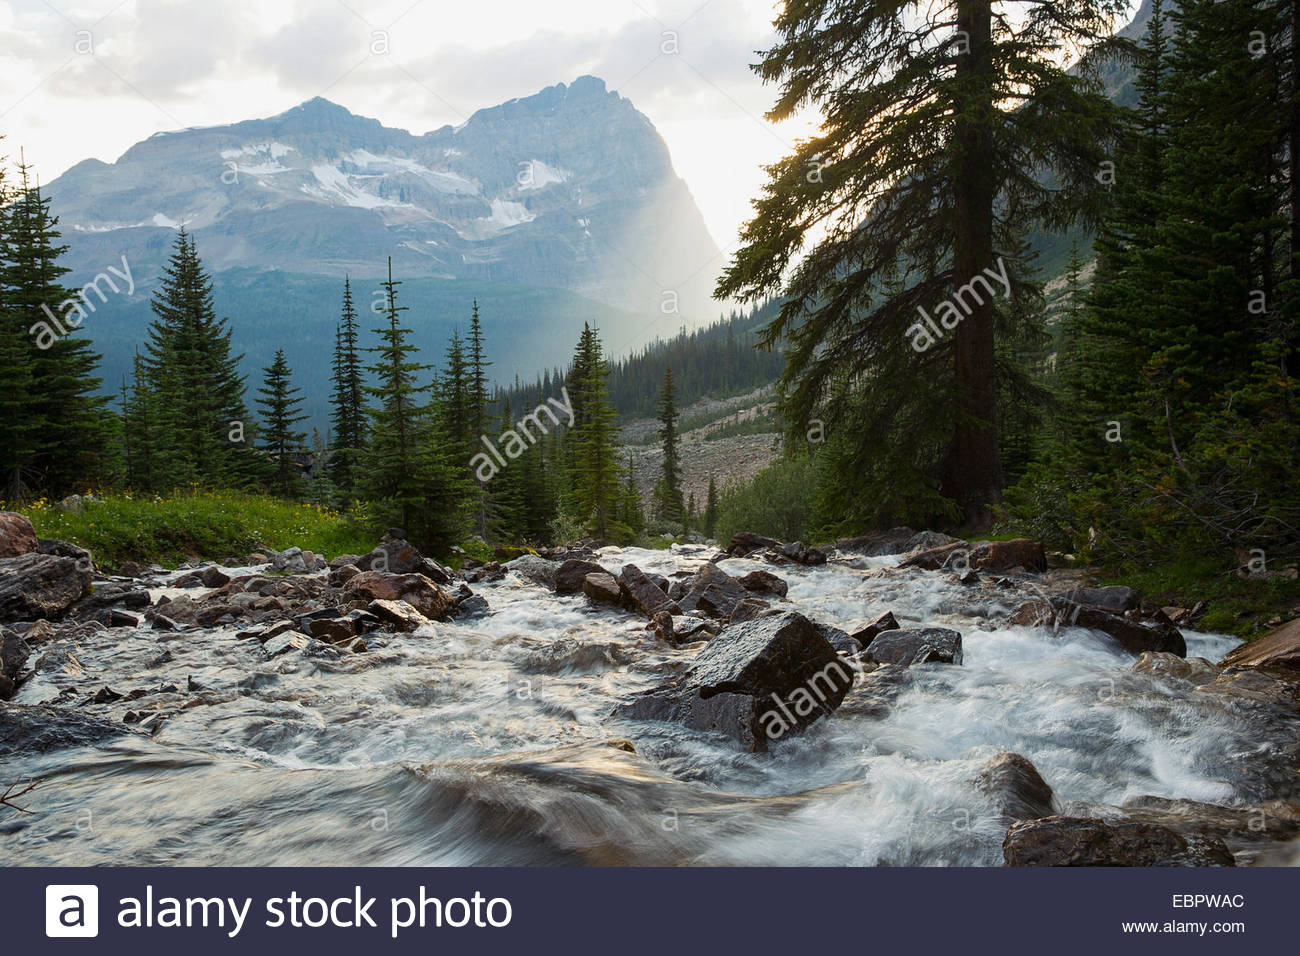 Rushing Kicking Horse river below majestic mountain - Stock Image